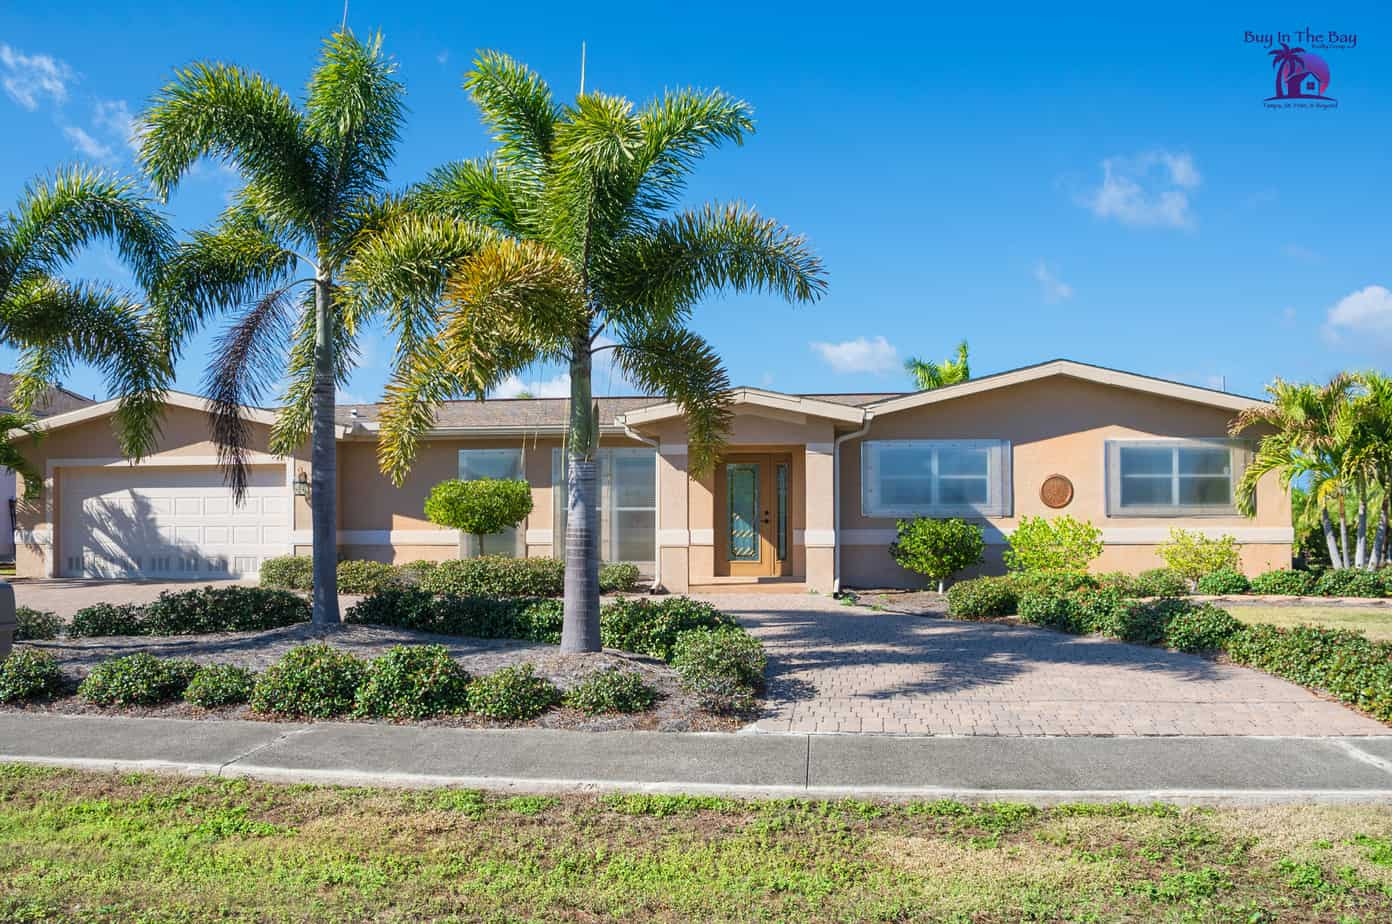 ranch style home that is tan with palm trees, similar to what would be found in Brandon FL